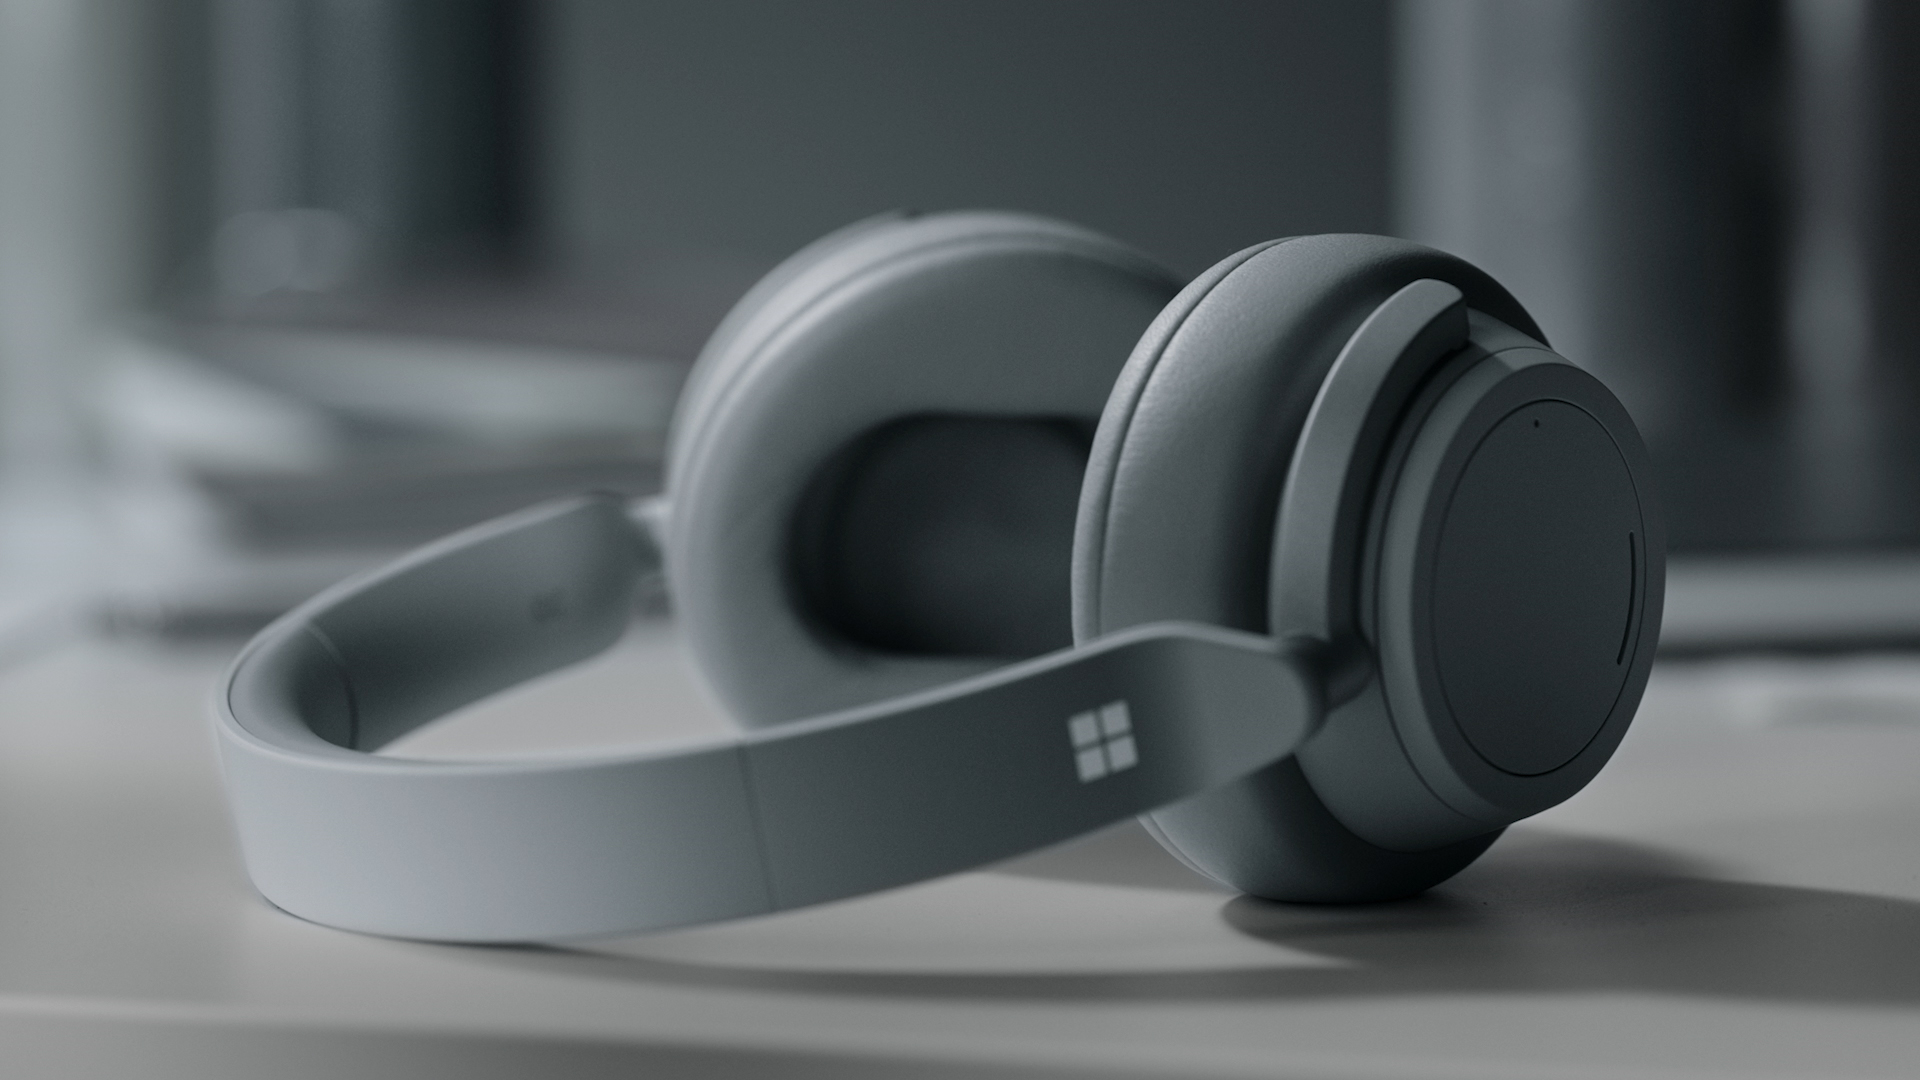 small resolution of meet the new surface headphones the smarter way to listen microsoft surface